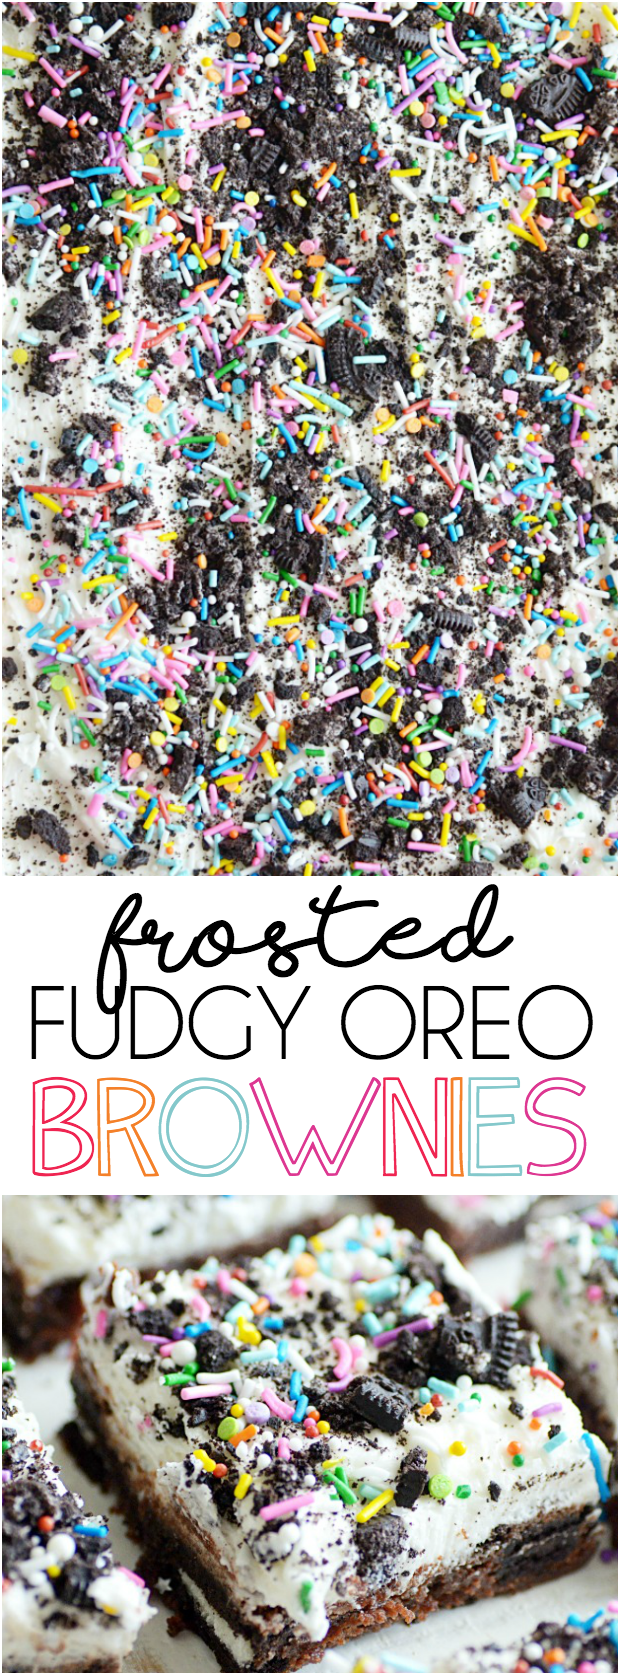 Super rich and fudgy brownies stuffed with Oreos and smothered in vanilla buttercream.